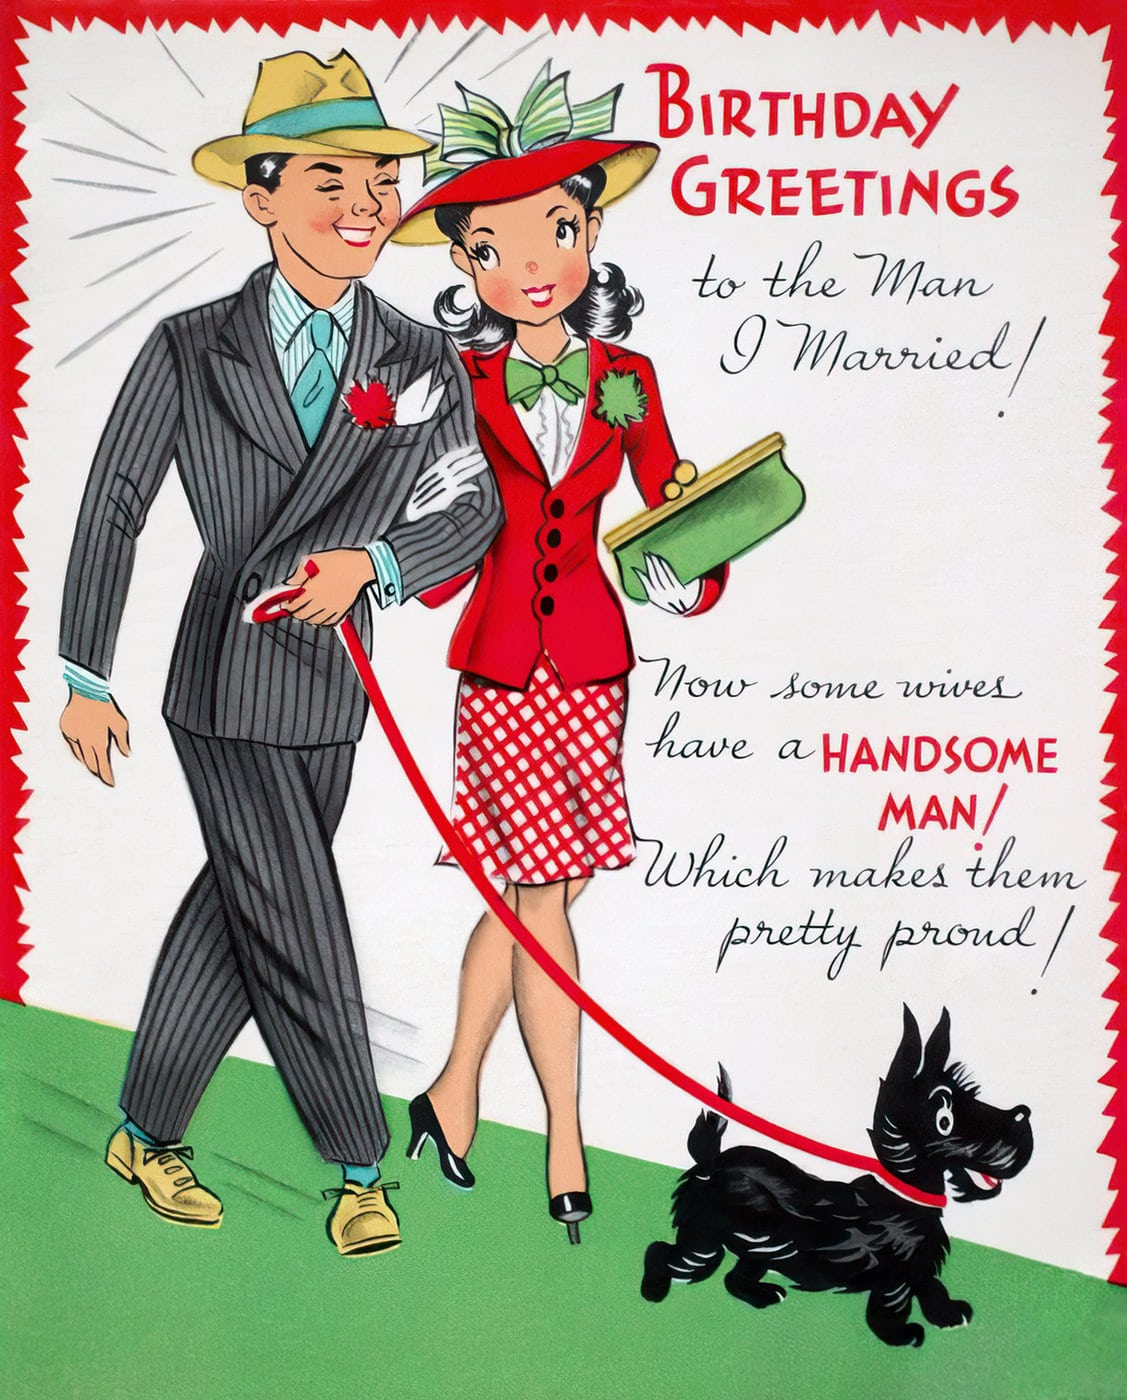 Birthday greetings to the man I married - Vintage 1940s card